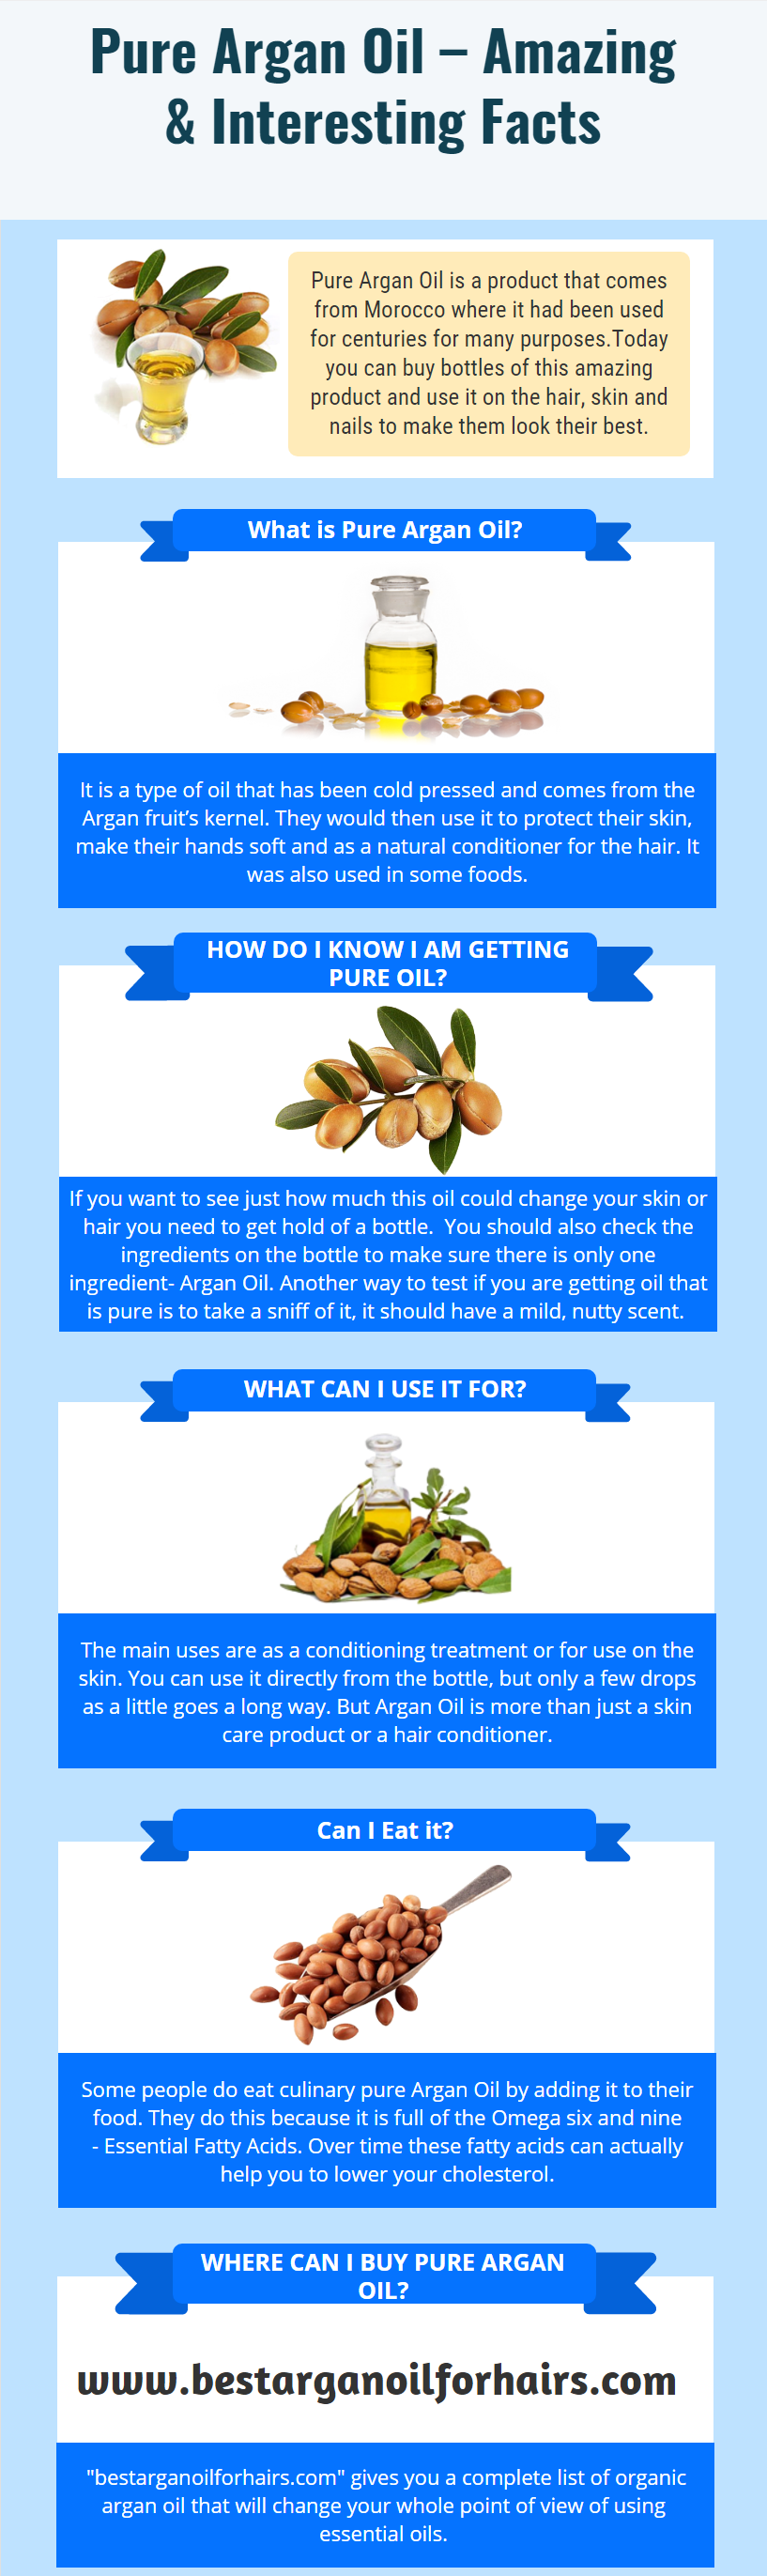 Pure Argan Oil Amazing Interesting Facts by emmaclark07 on DeviantArt